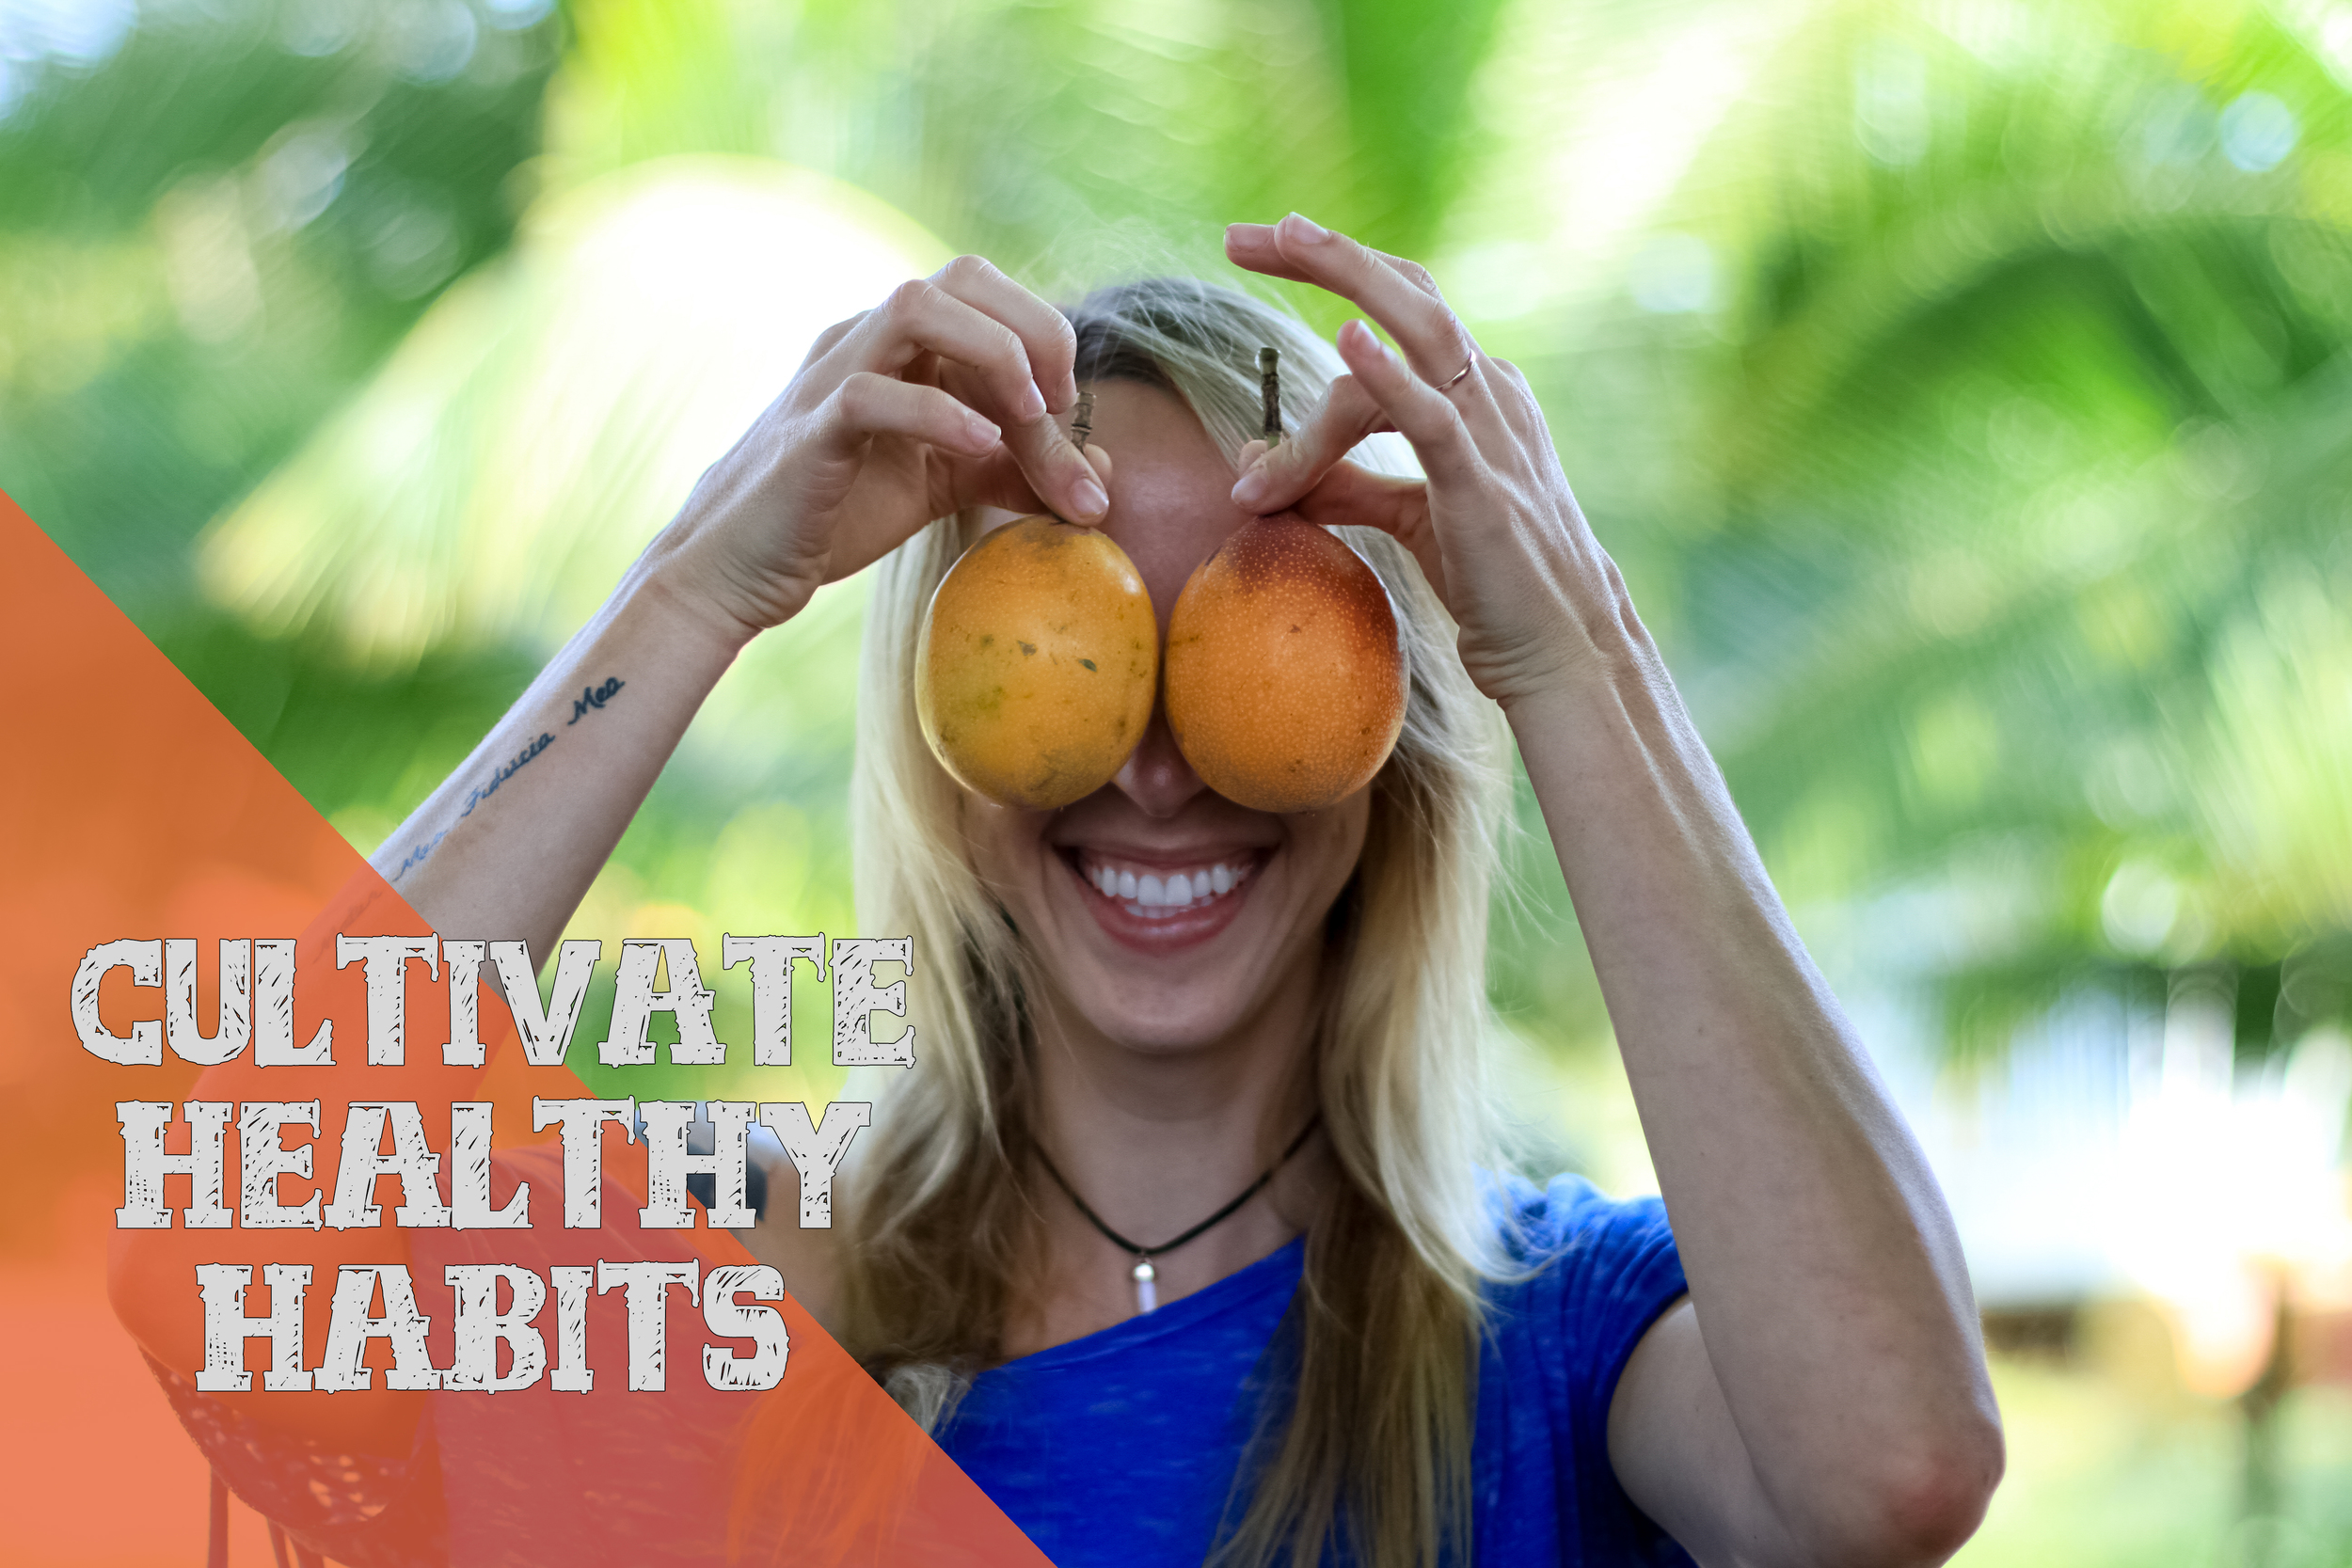 Cultivate healthy habits 4.jpg